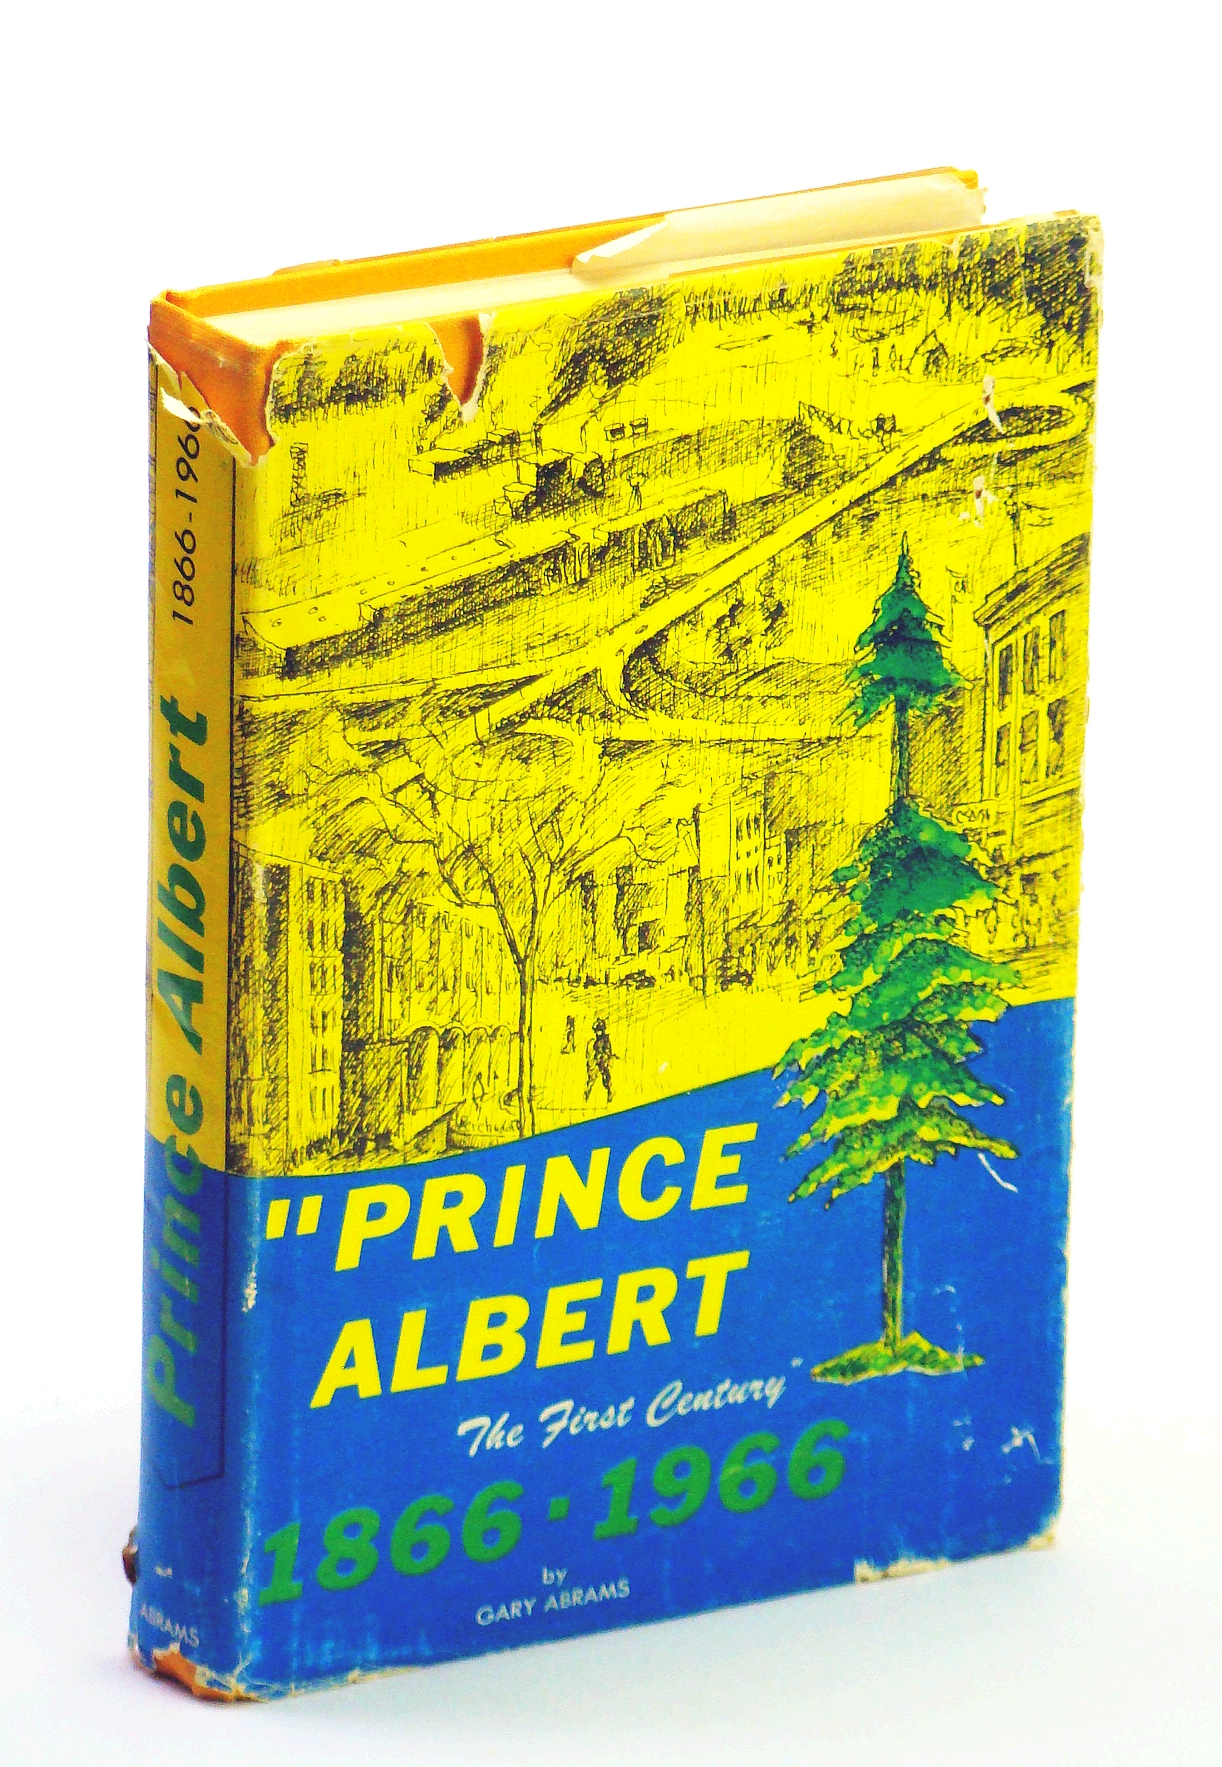 Image for Prince Albert: The First Century 1866-1966